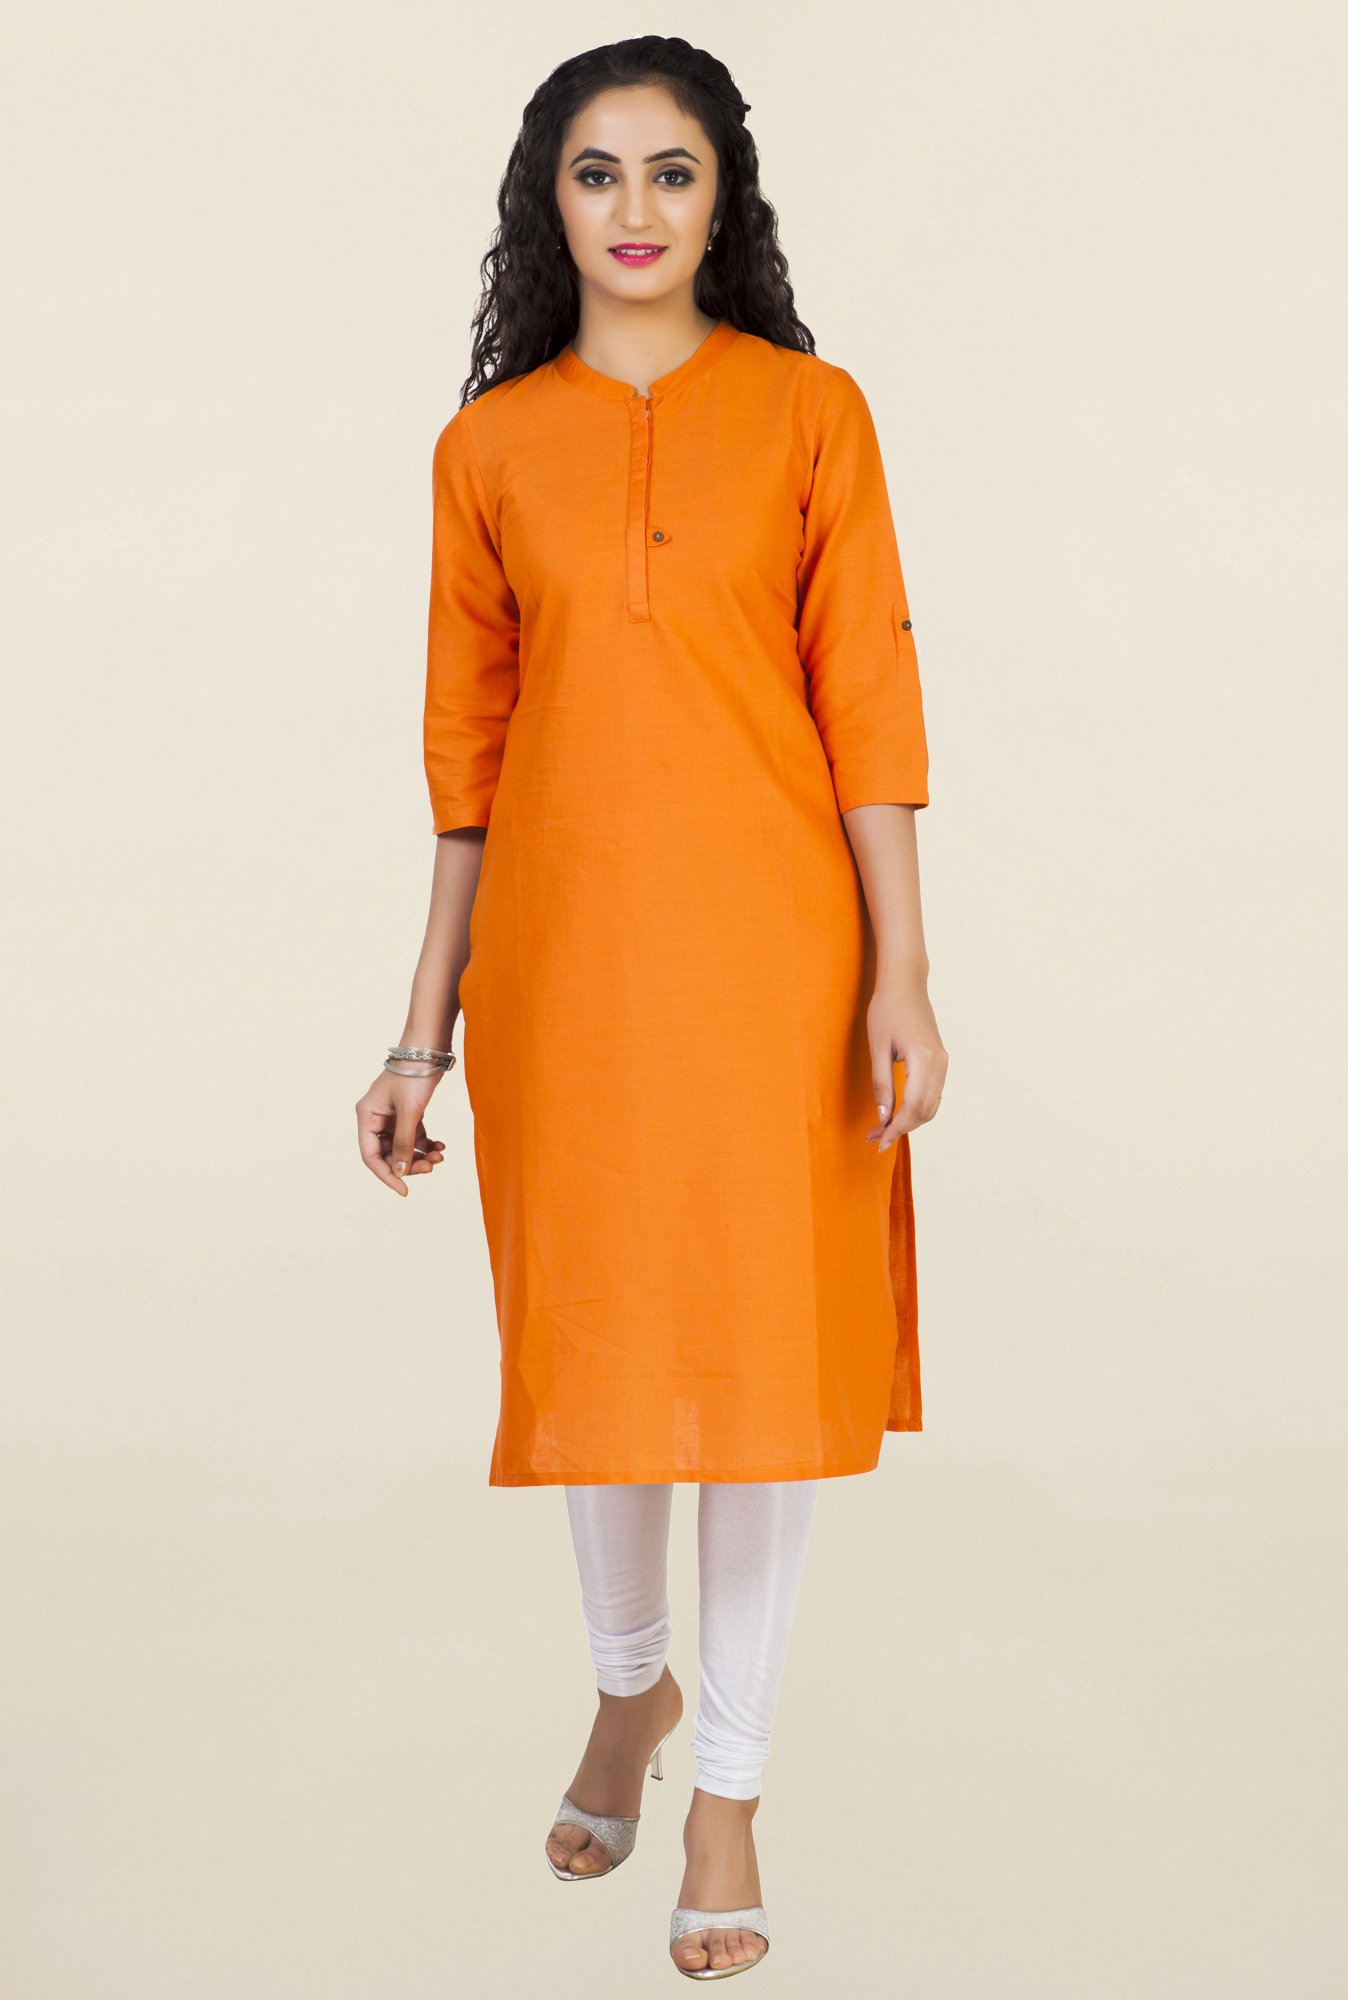 Aurelia Orange Solid Kurta